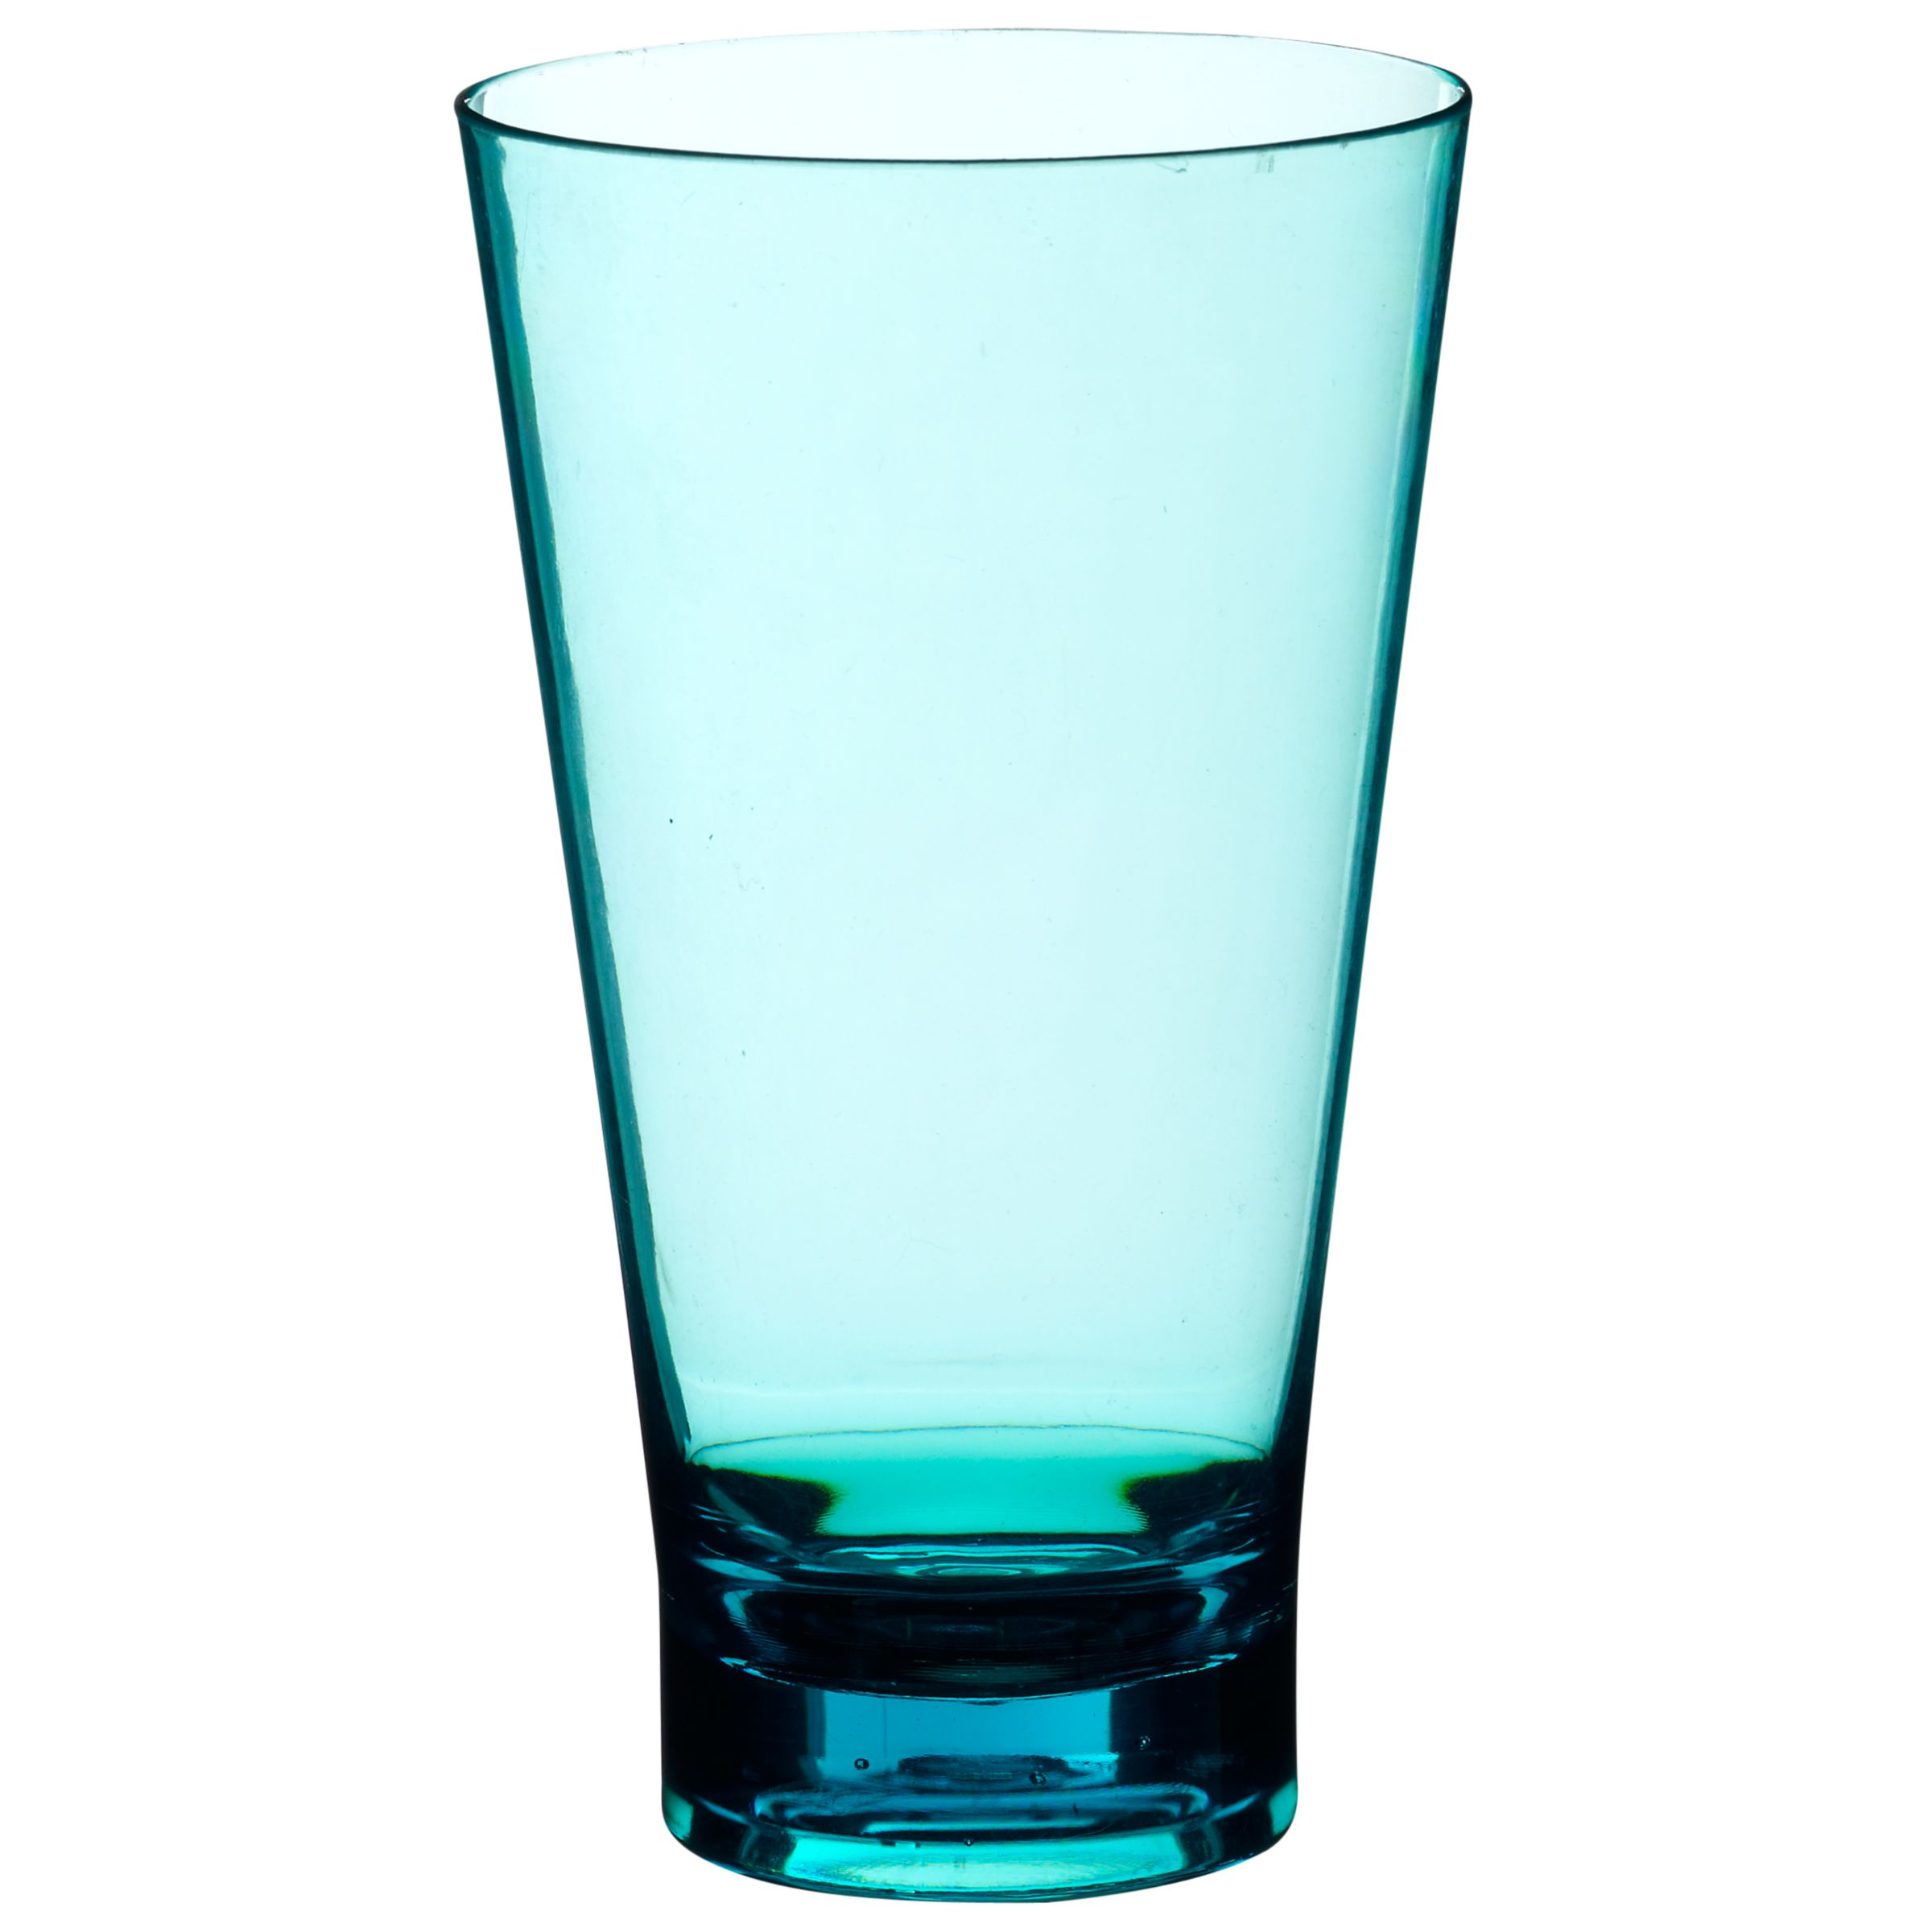 John Lewis Playnation Acrylic Highballs